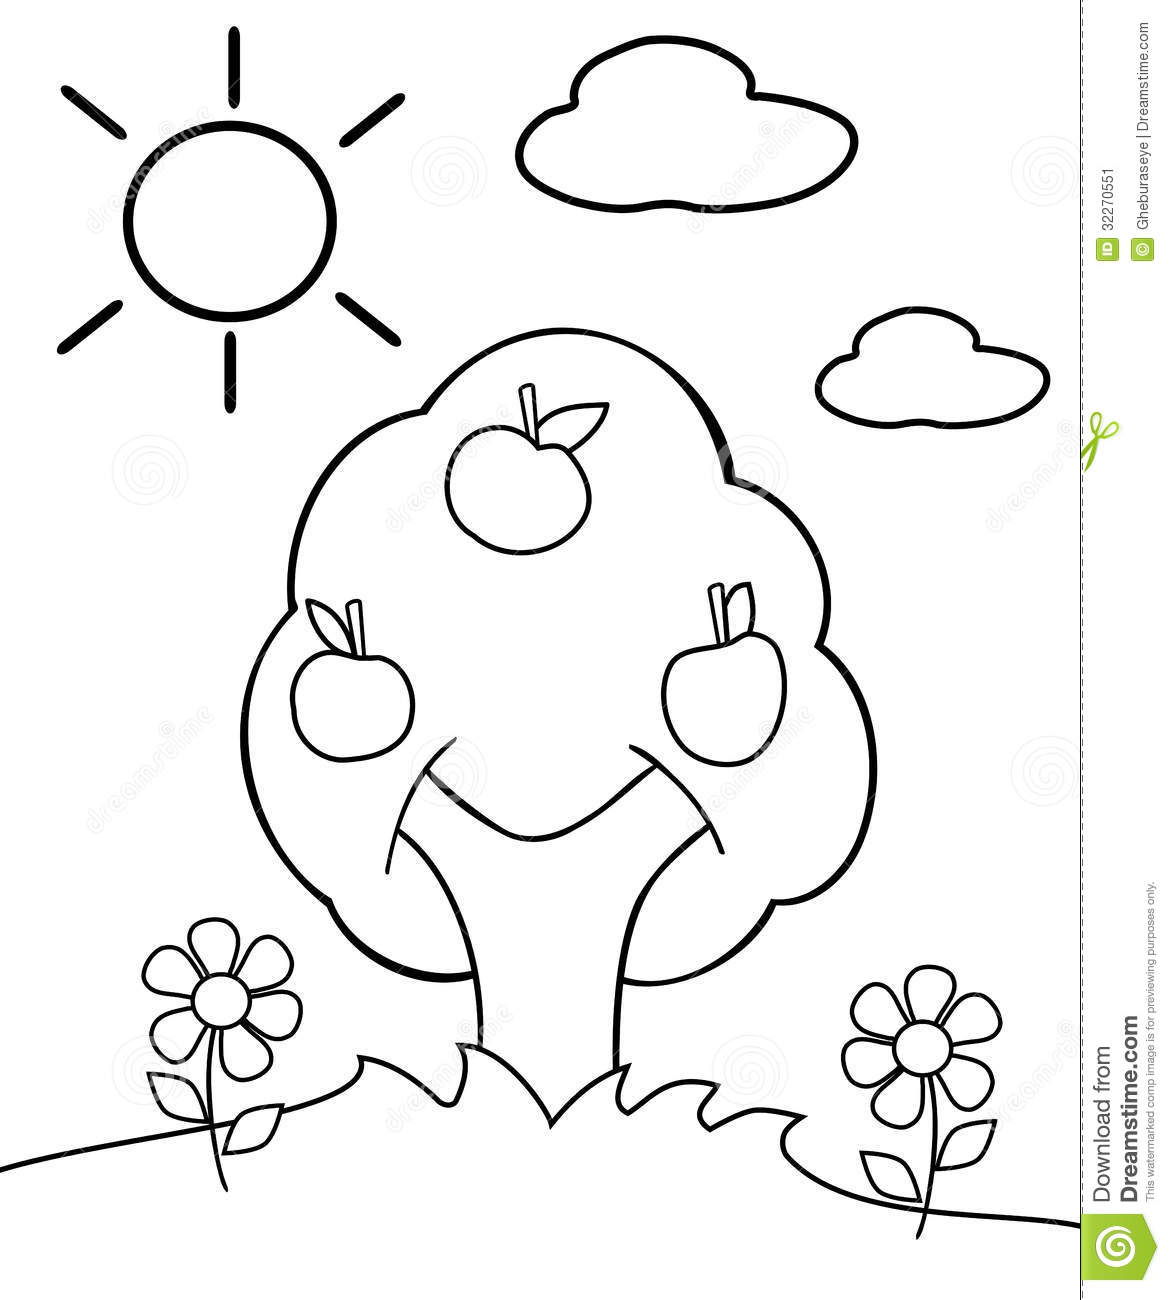 Coloring Tree Stock Image Image Of Graphic Autumn Children S Tree Coloring Pages